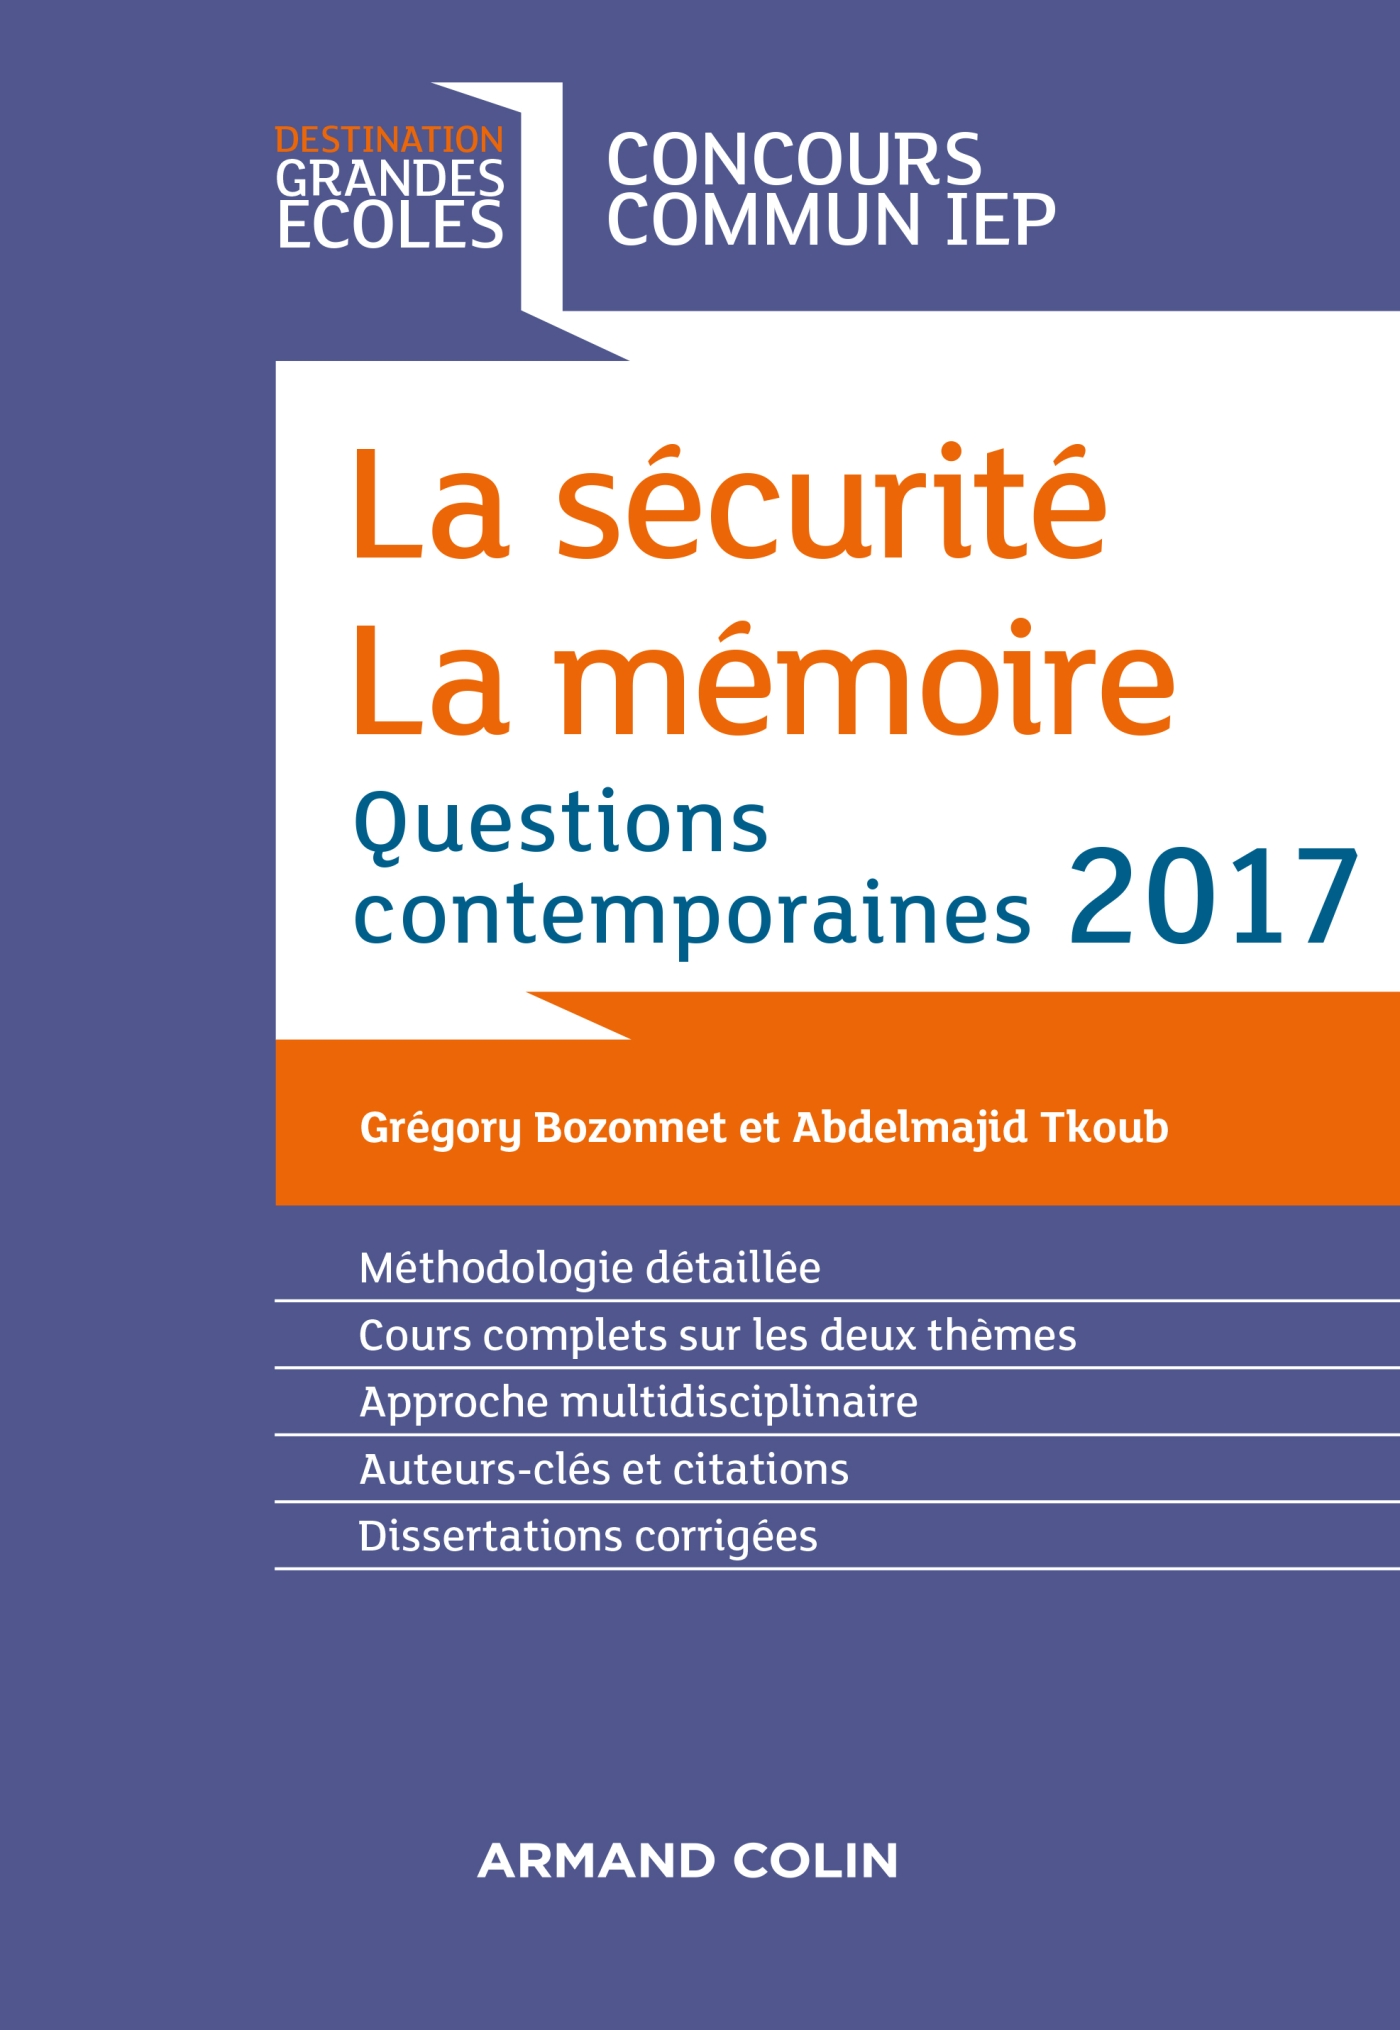 La sécurité. La mémoire. Question contemporaine 2017